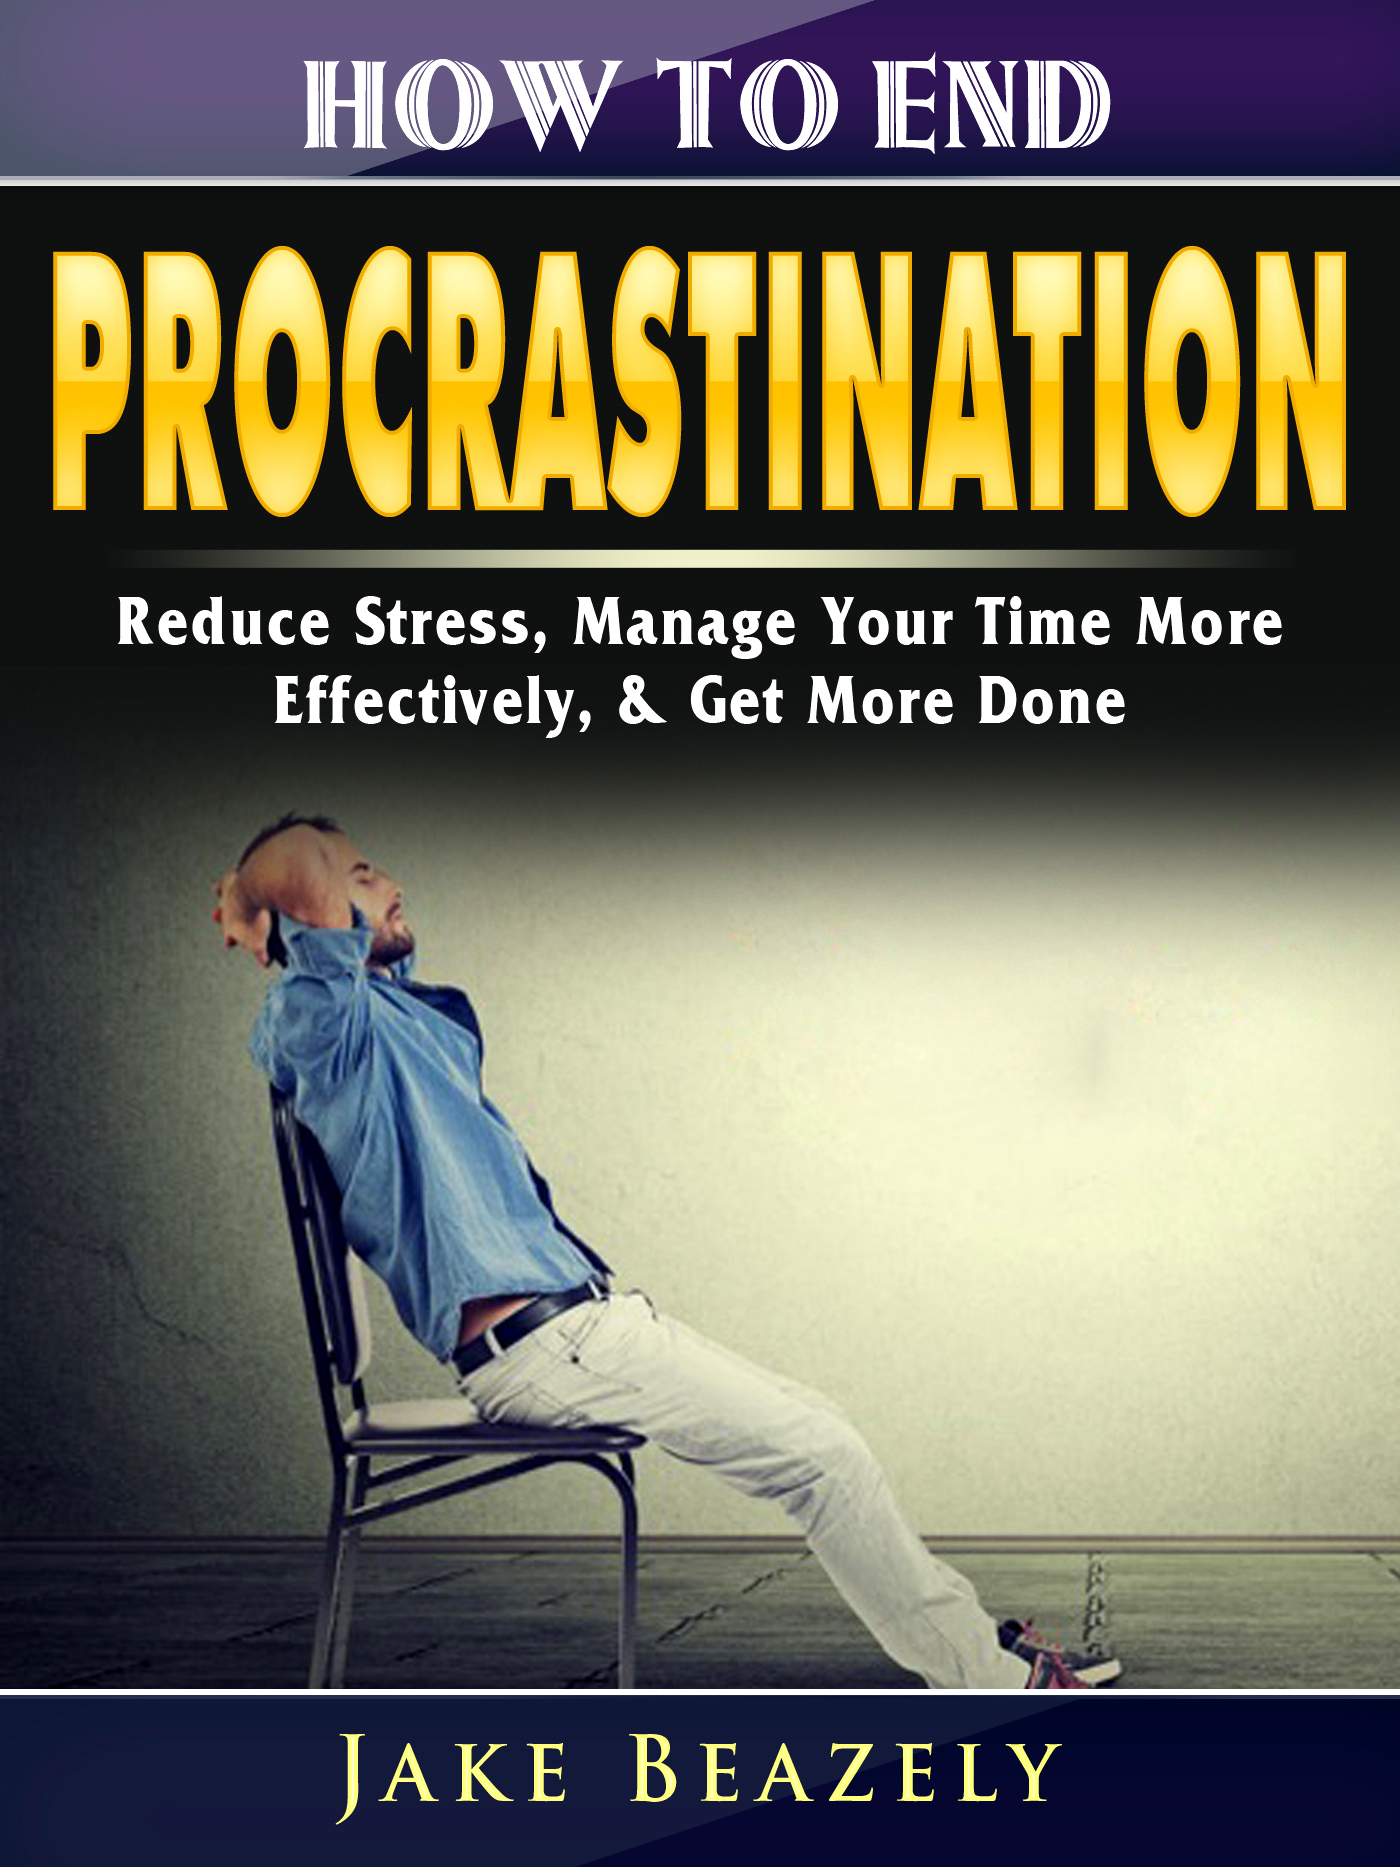 How to end procrastination